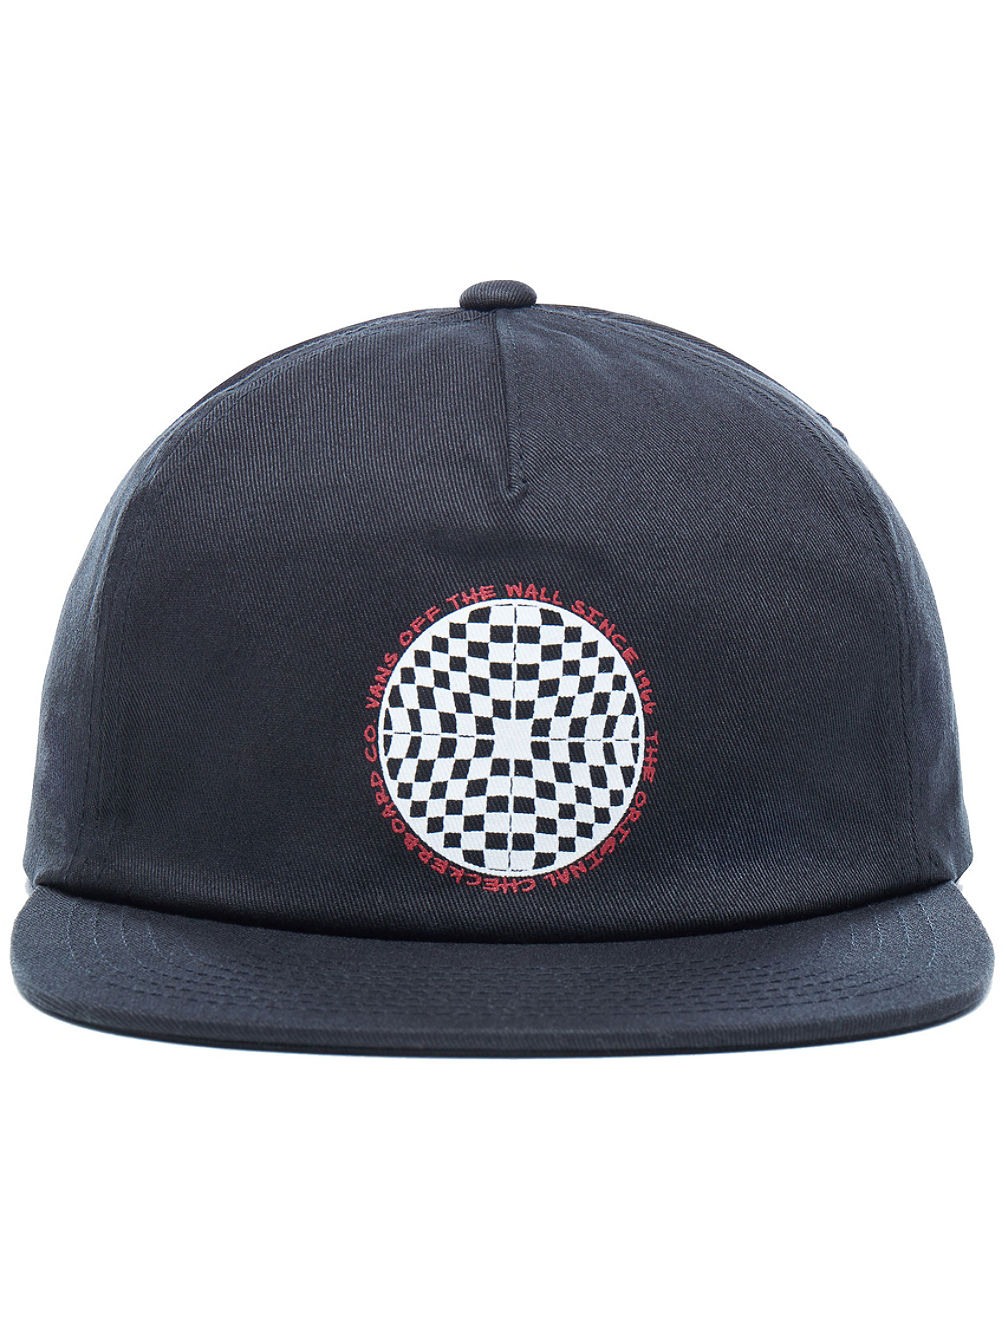 Checkered Shallow Unstructured Cap